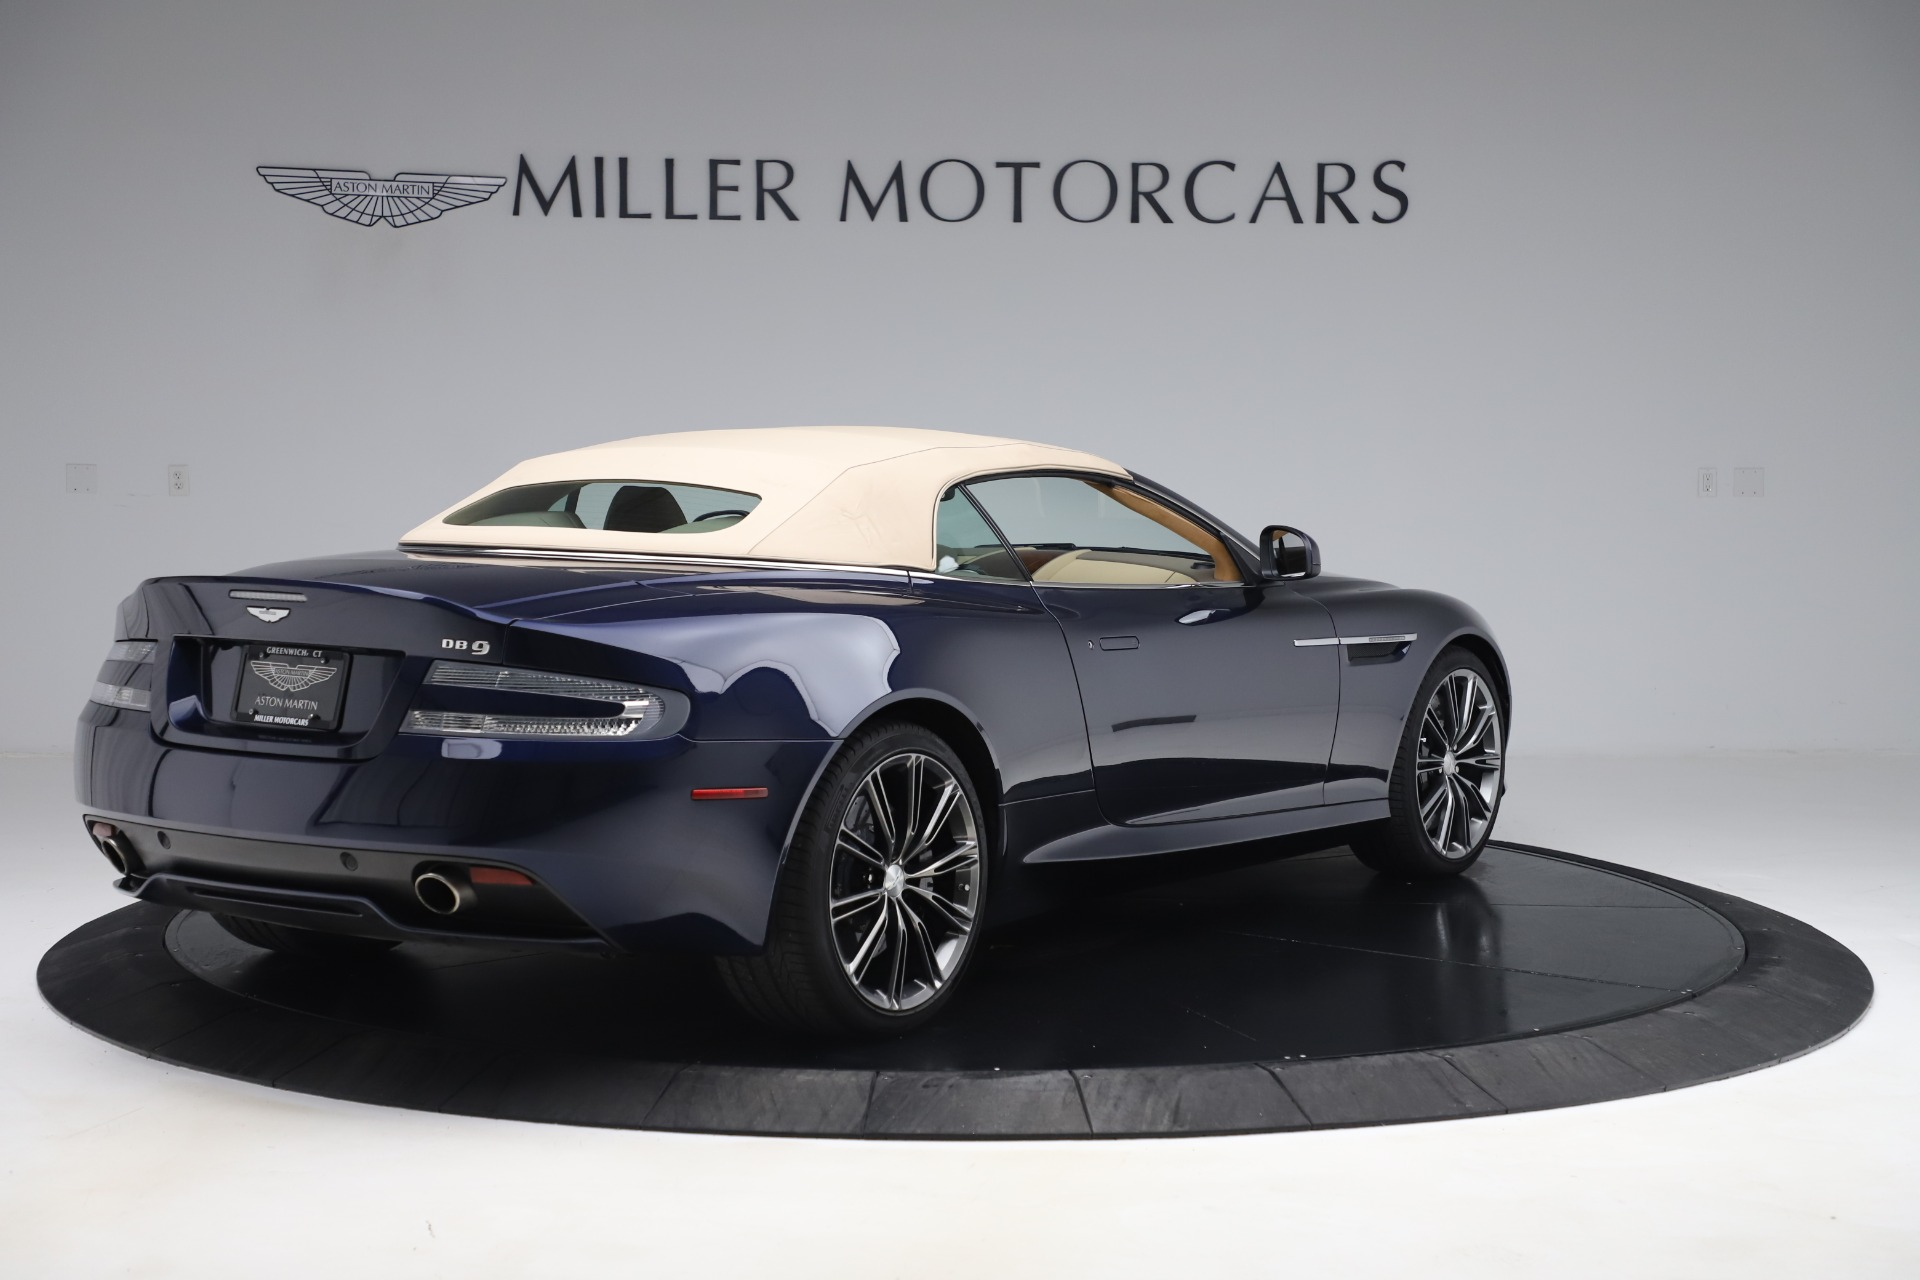 Used 2014 Aston Martin DB9 Volante For Sale In Westport, CT 3591_p16